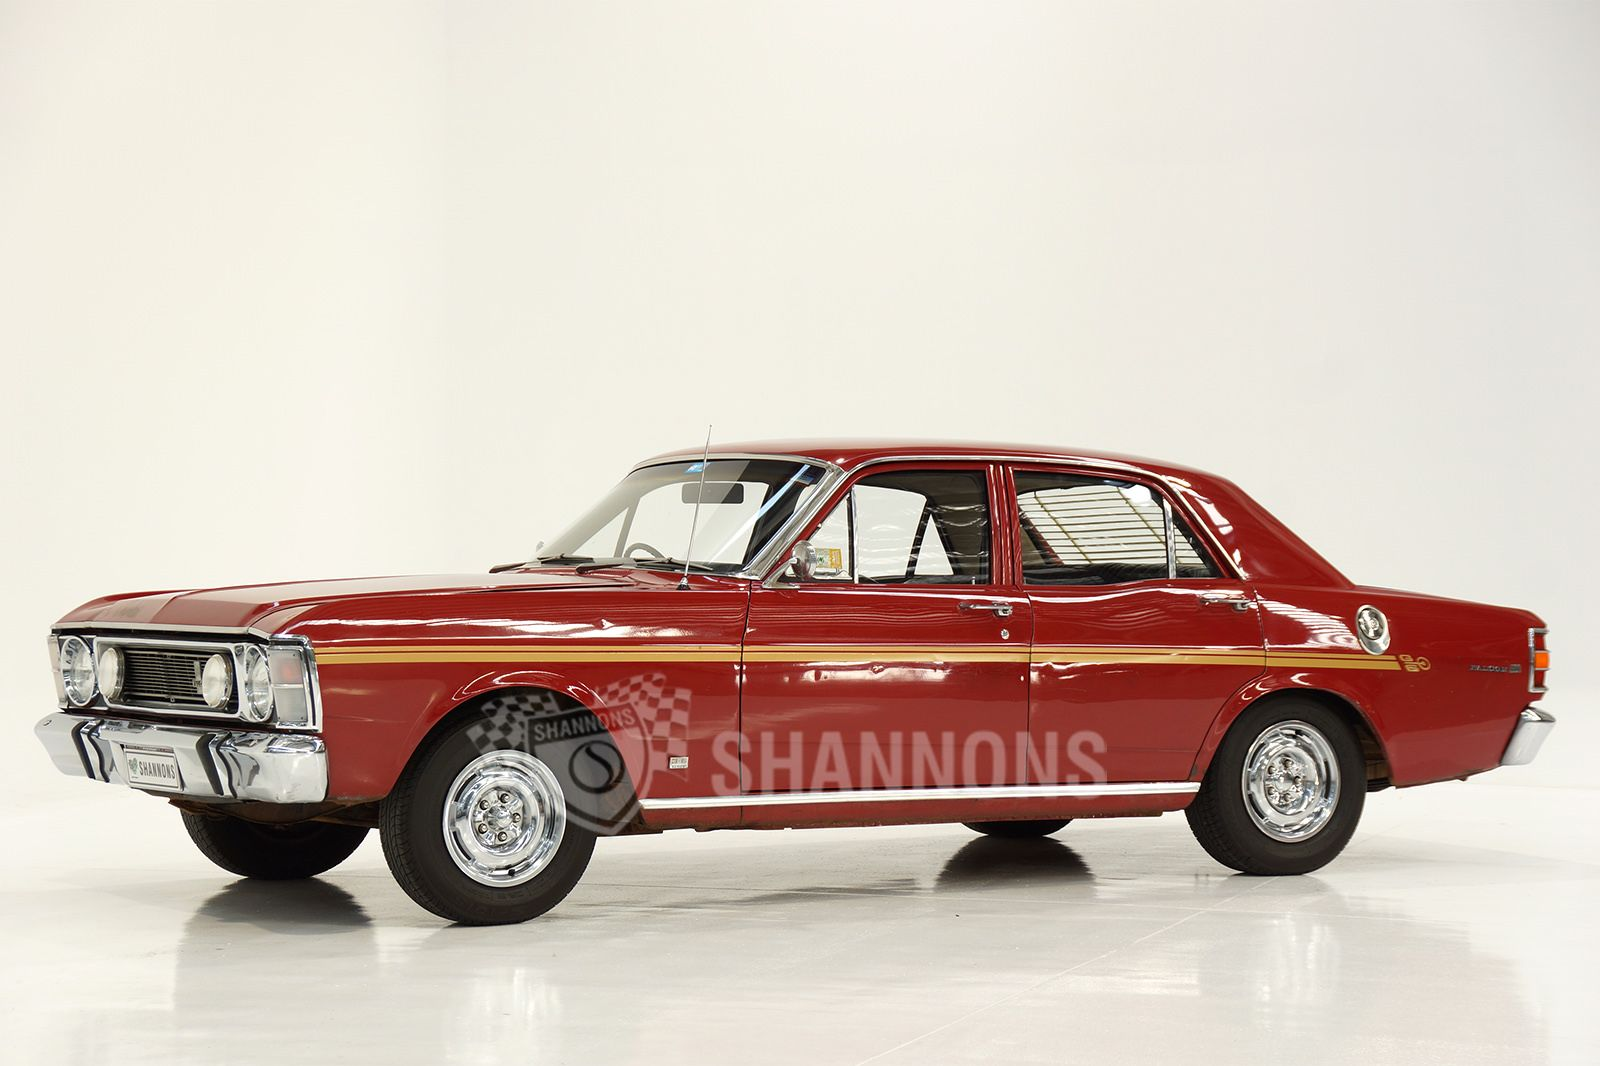 1969 Ford XW Falcon GS